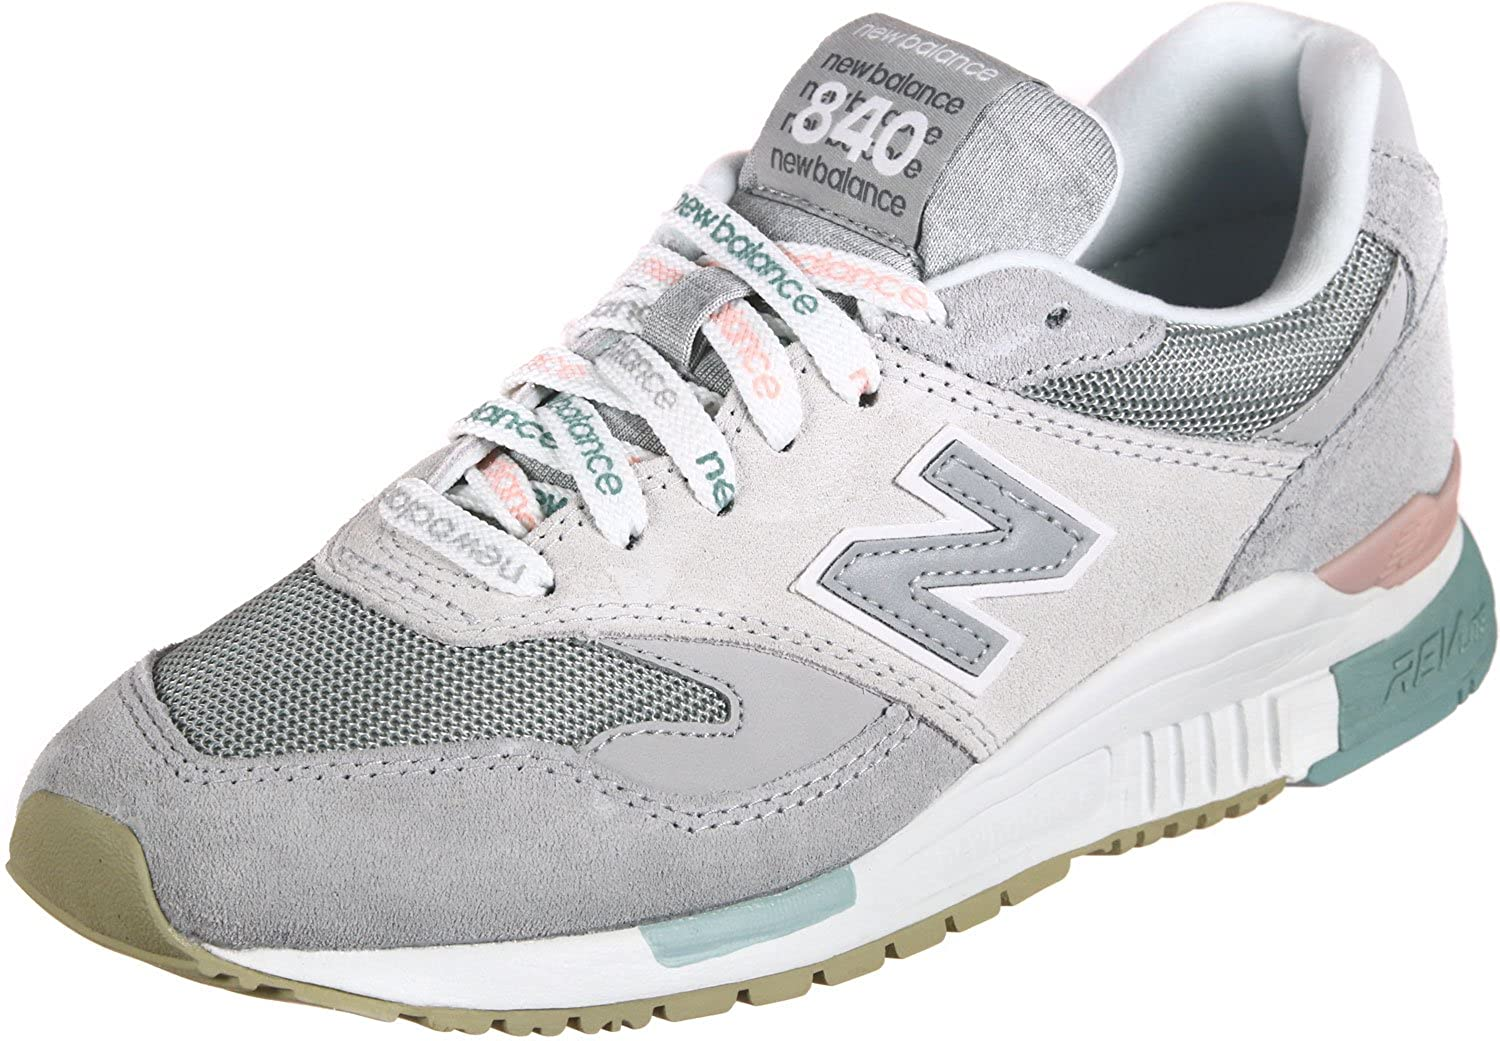 fd47a2526a6a3 New Balance Women's 840 Trainers: Amazon.co.uk: Shoes & Bags